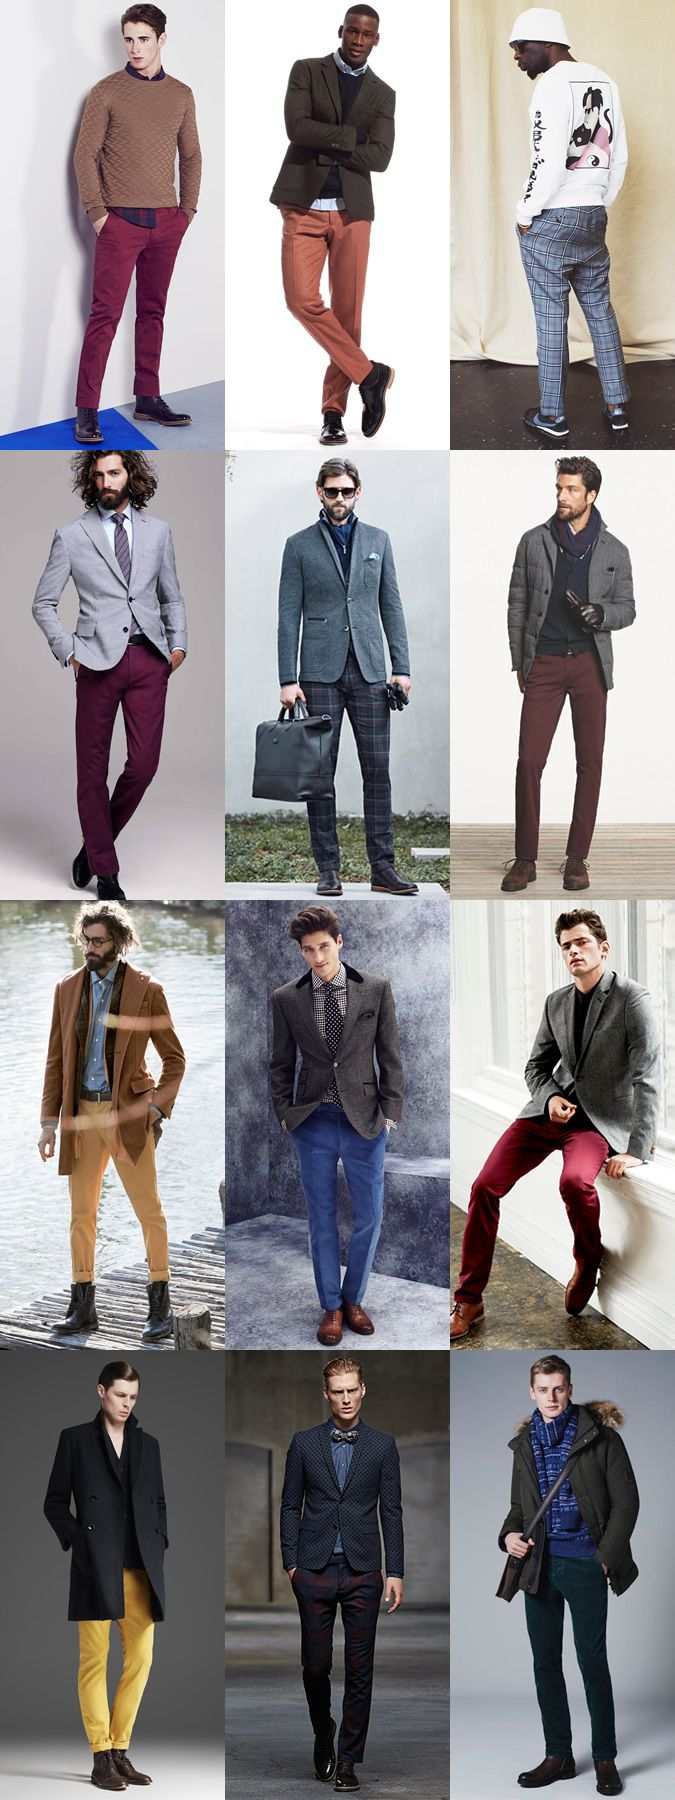 Men's Coloured/Patterned Trousers and Chinos Autumn/Winter Outfit Inspiration Lookbook (2014 style)